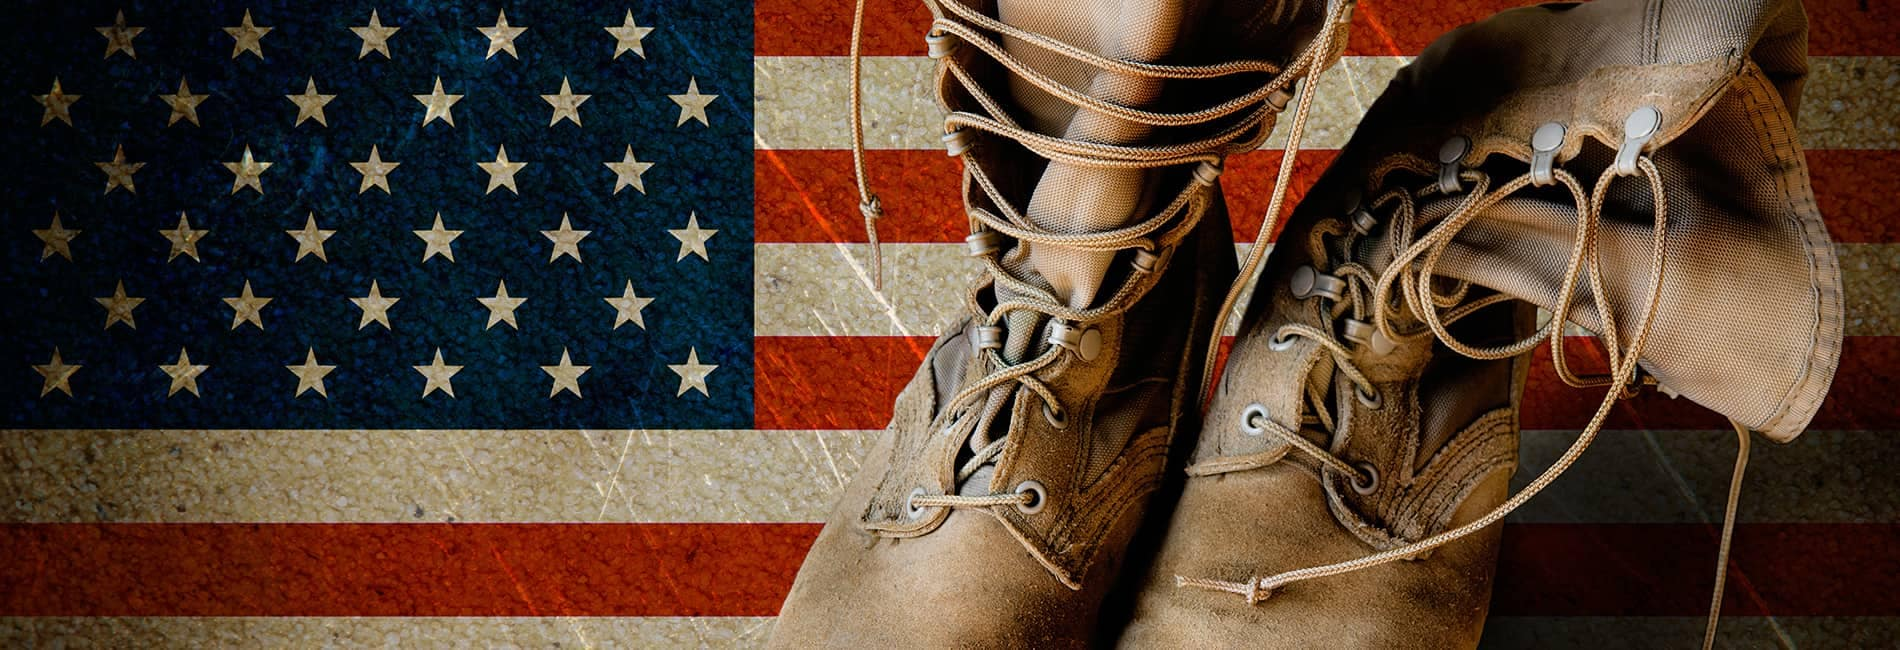 American Flag with boots